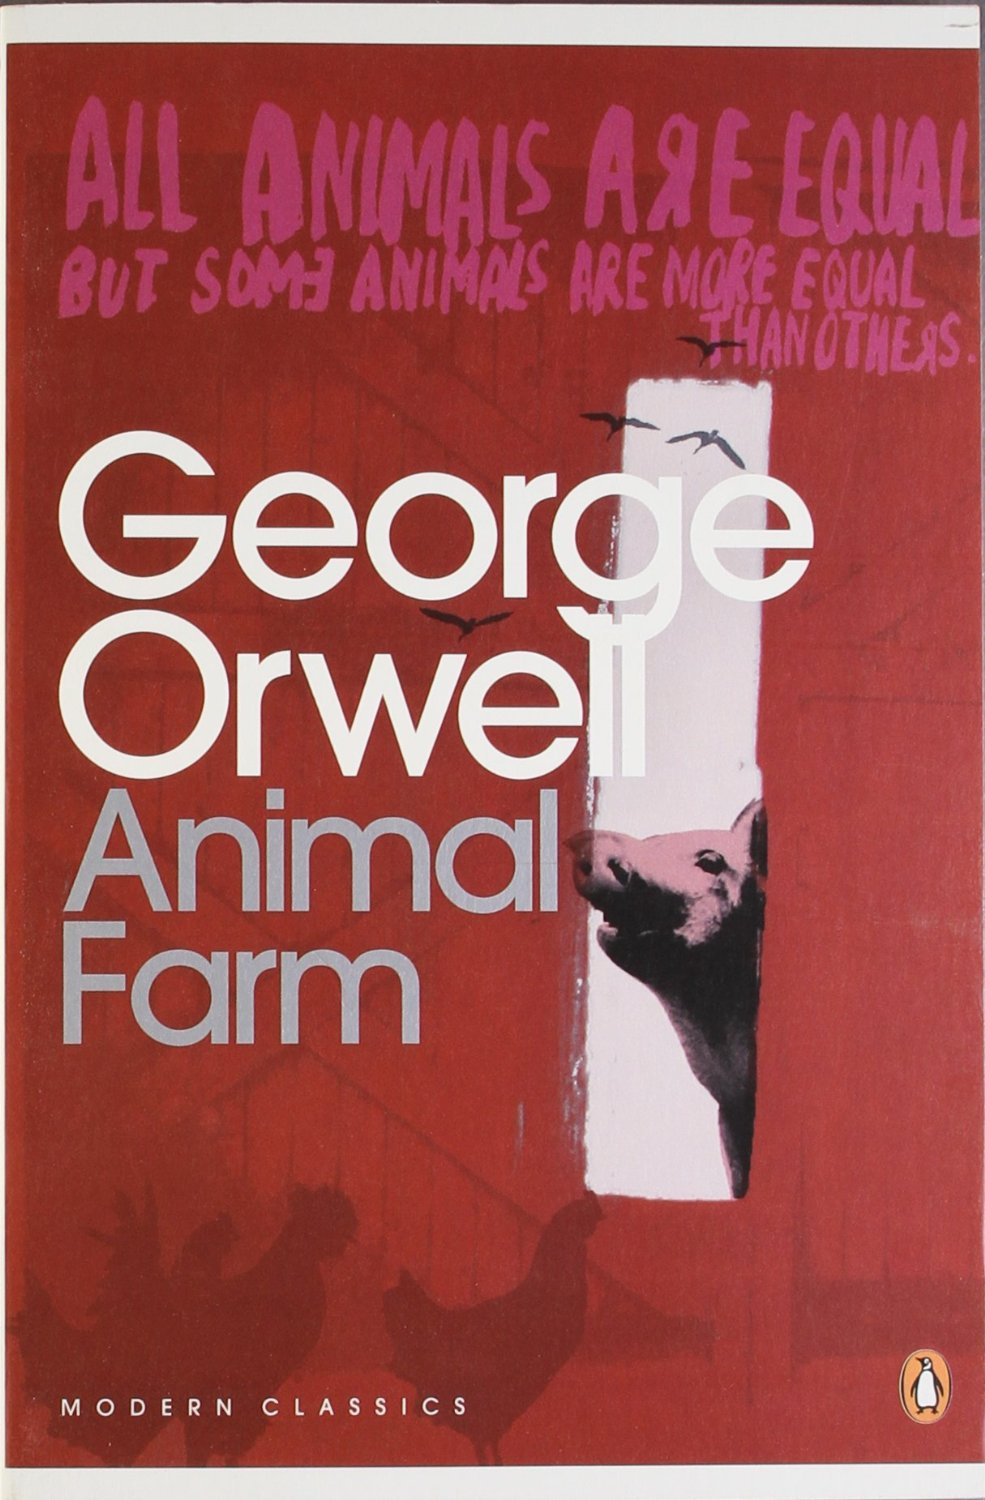 the pigs impact in utopia in animal farm a novel by george orwell Animal farm: utopia in the novel, animal farm, by george orwell old major's ideas of a and napoleon are the pigs that take over the farm and have conflict.